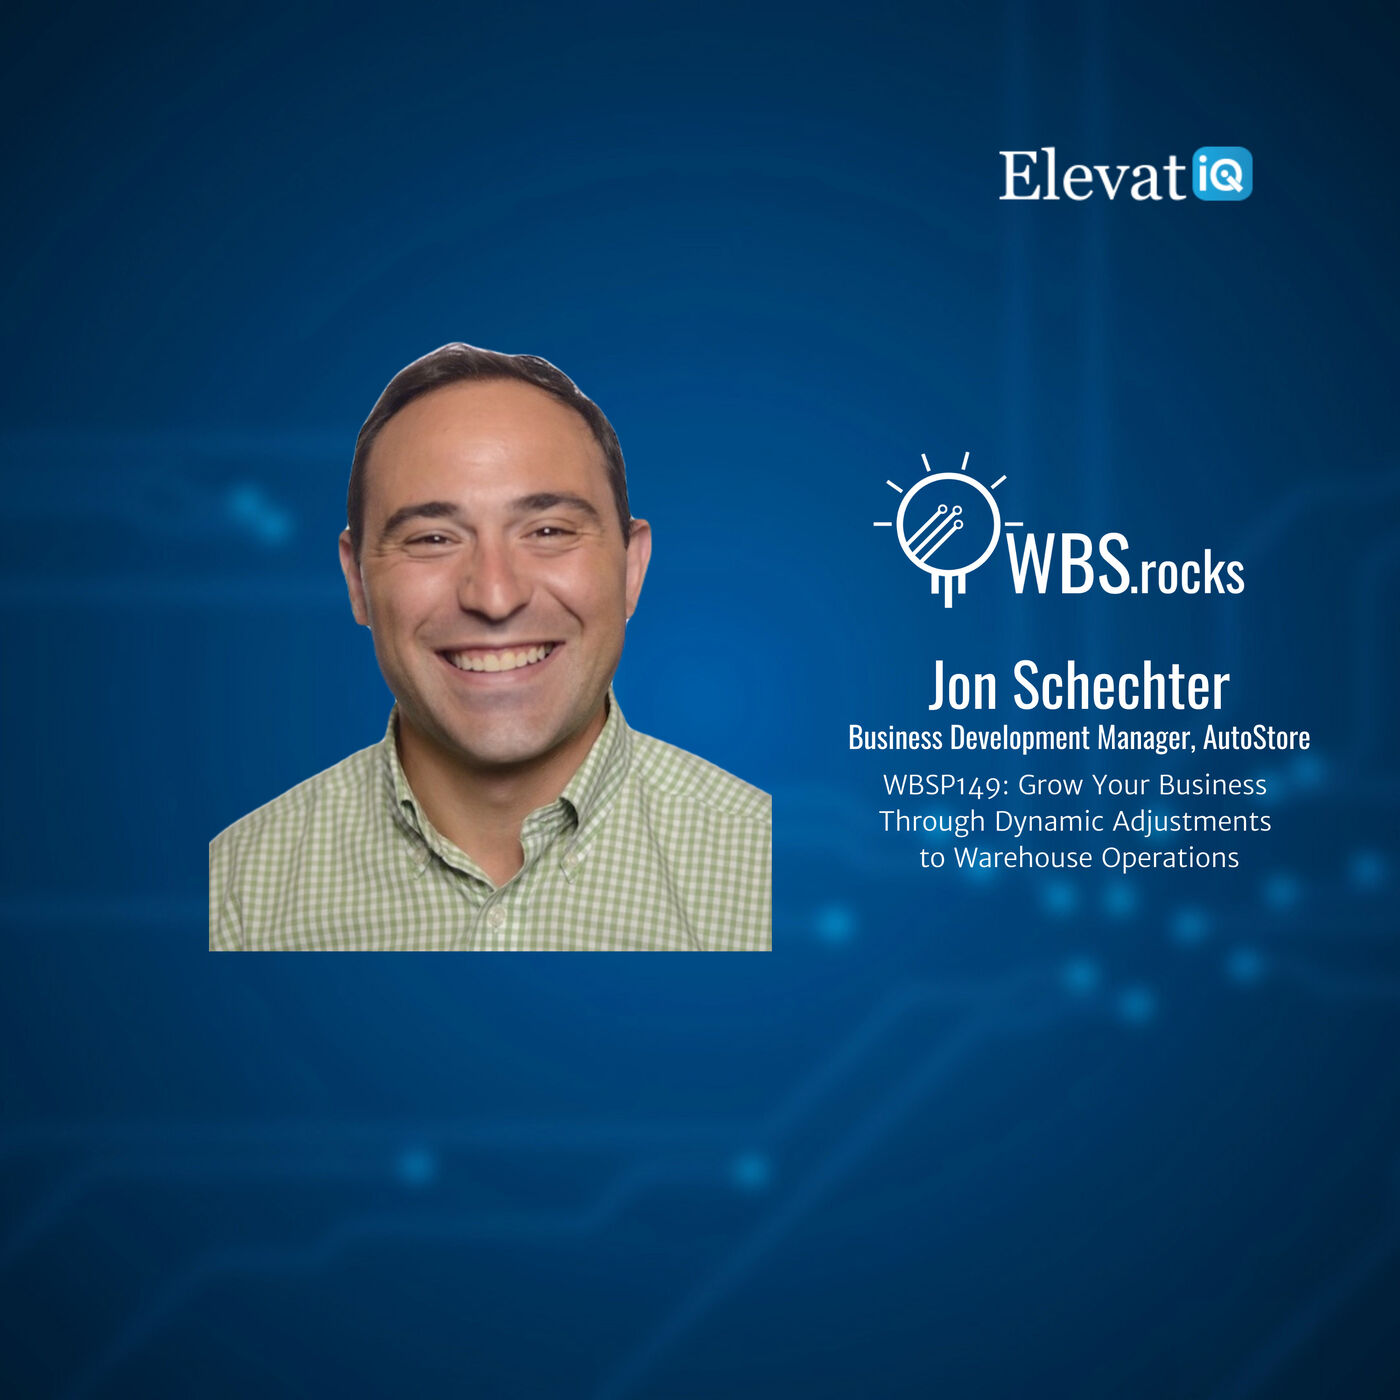 WBSP149: Grow Your Business Through Dynamic Adjustments to Warehouse Operations w/ Jon Schechter